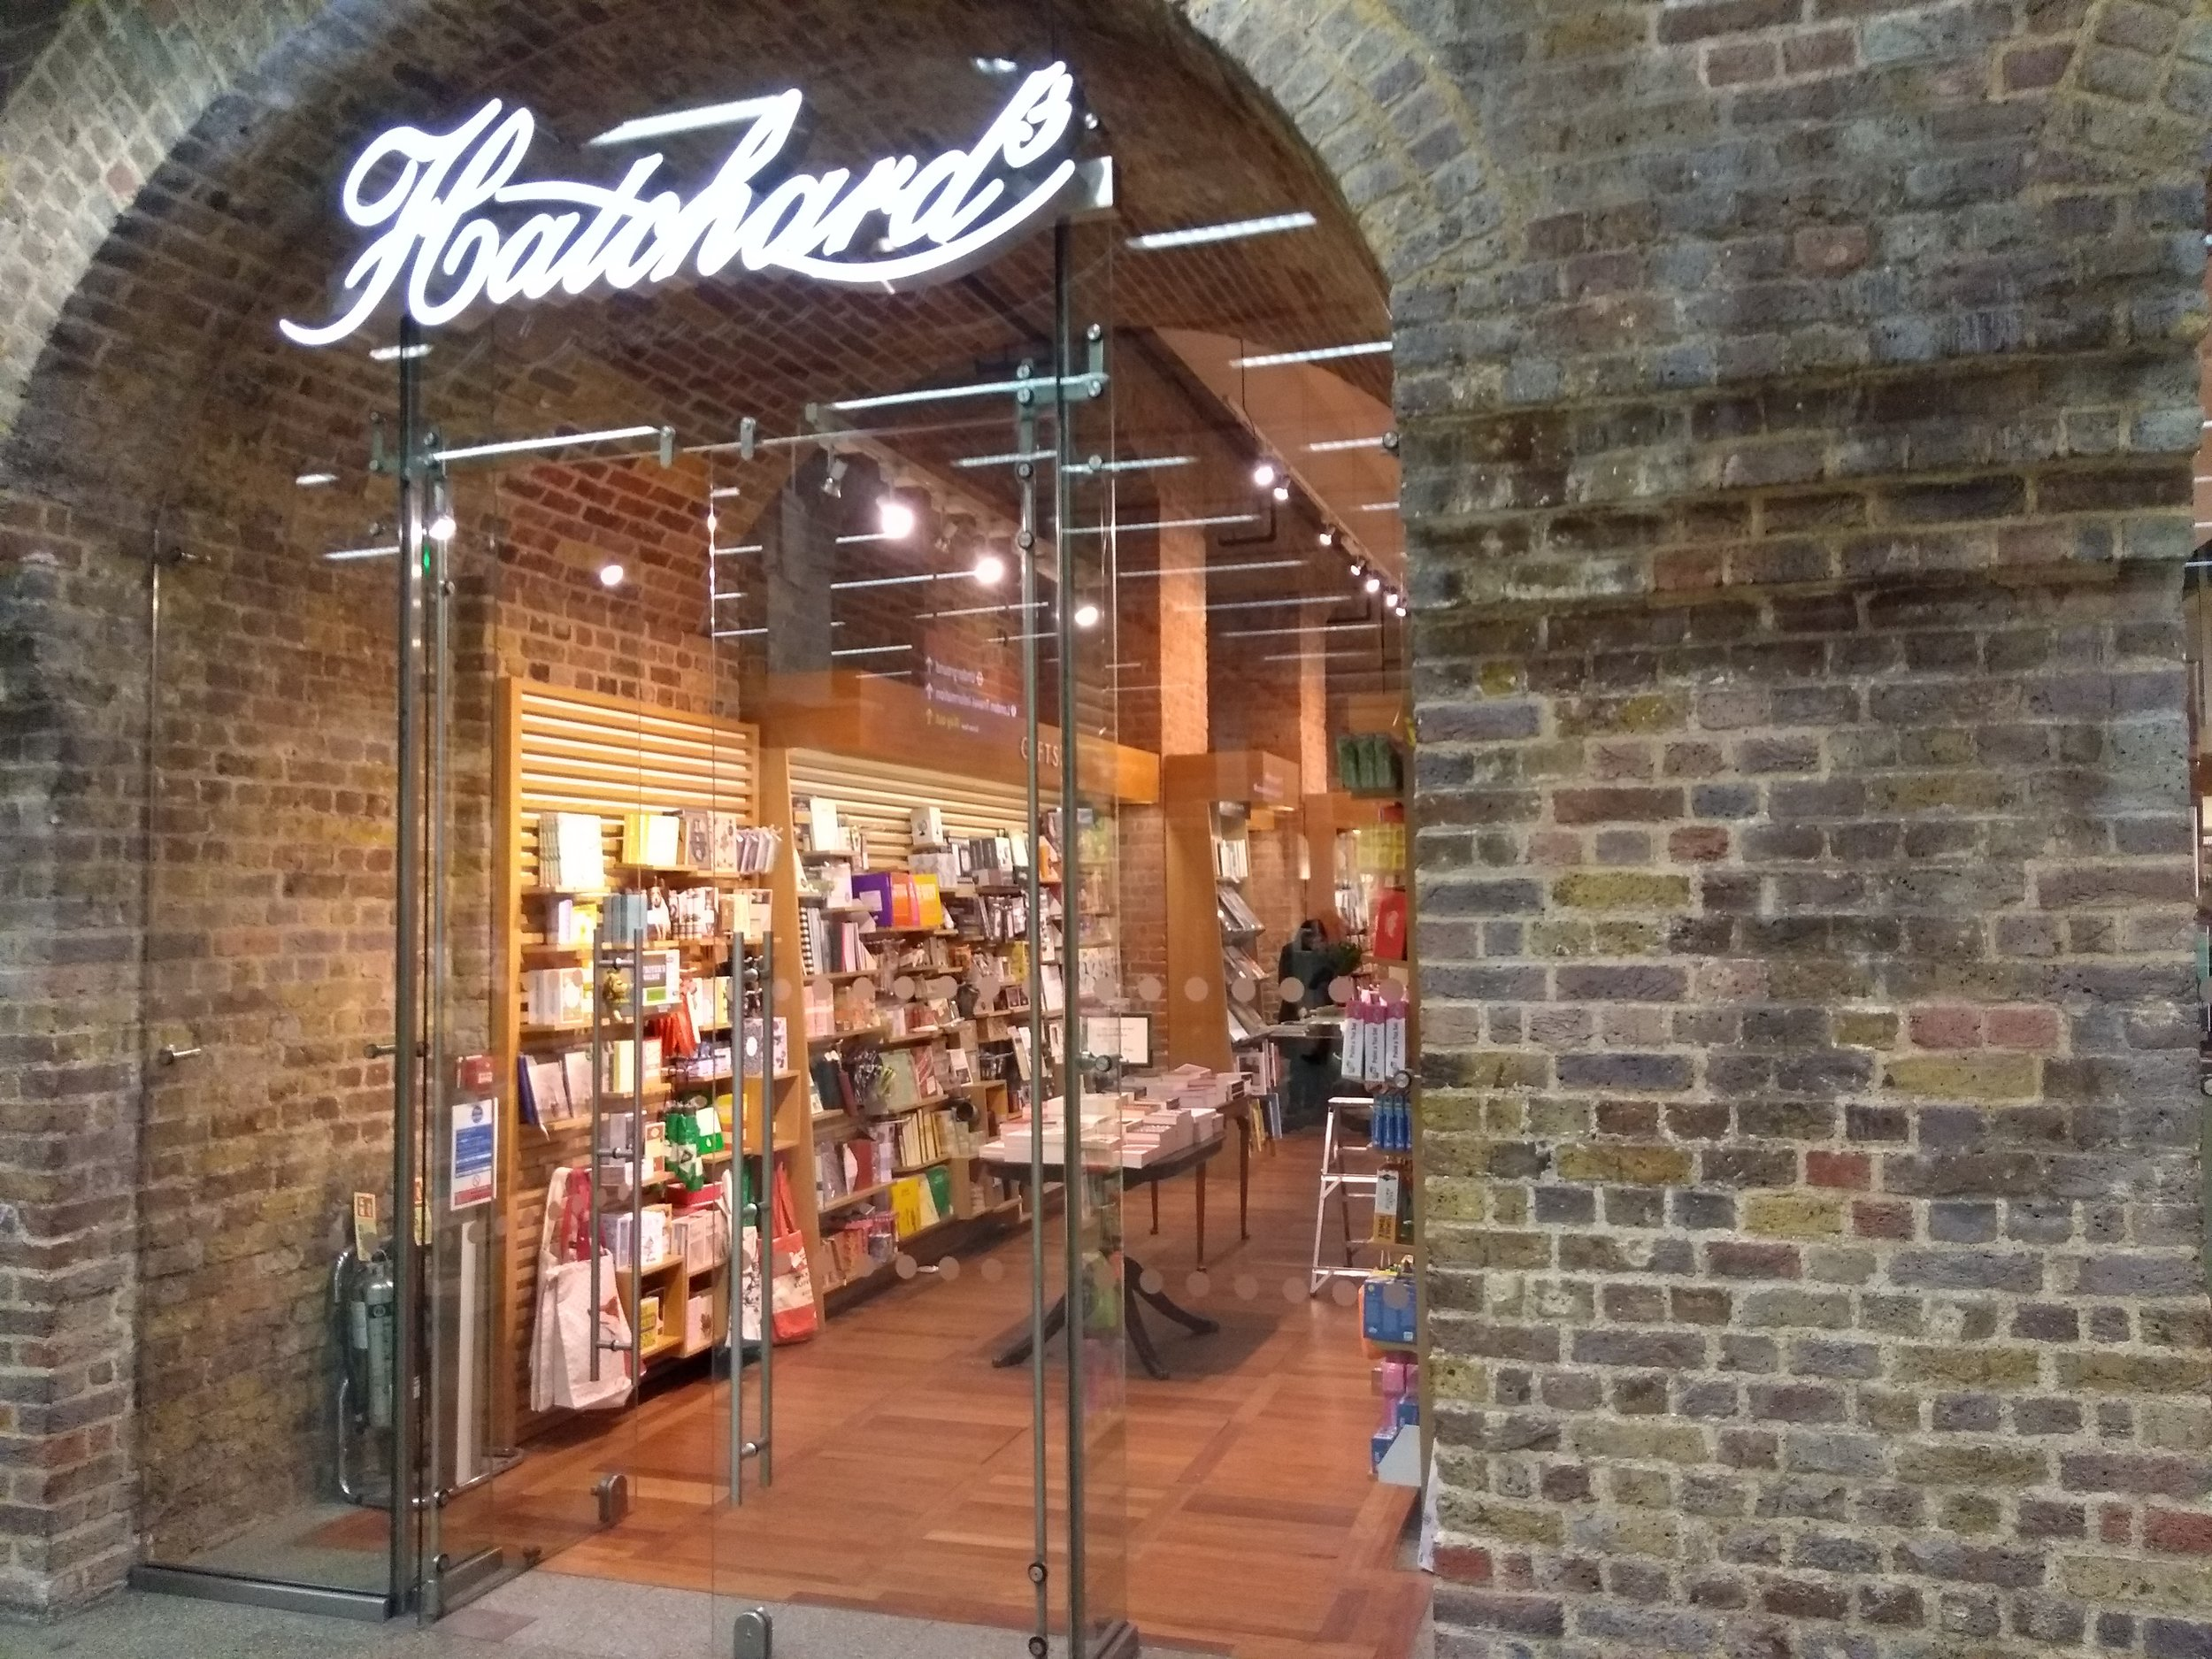 Hatchards, St Pancras, London, by Terry Freedman